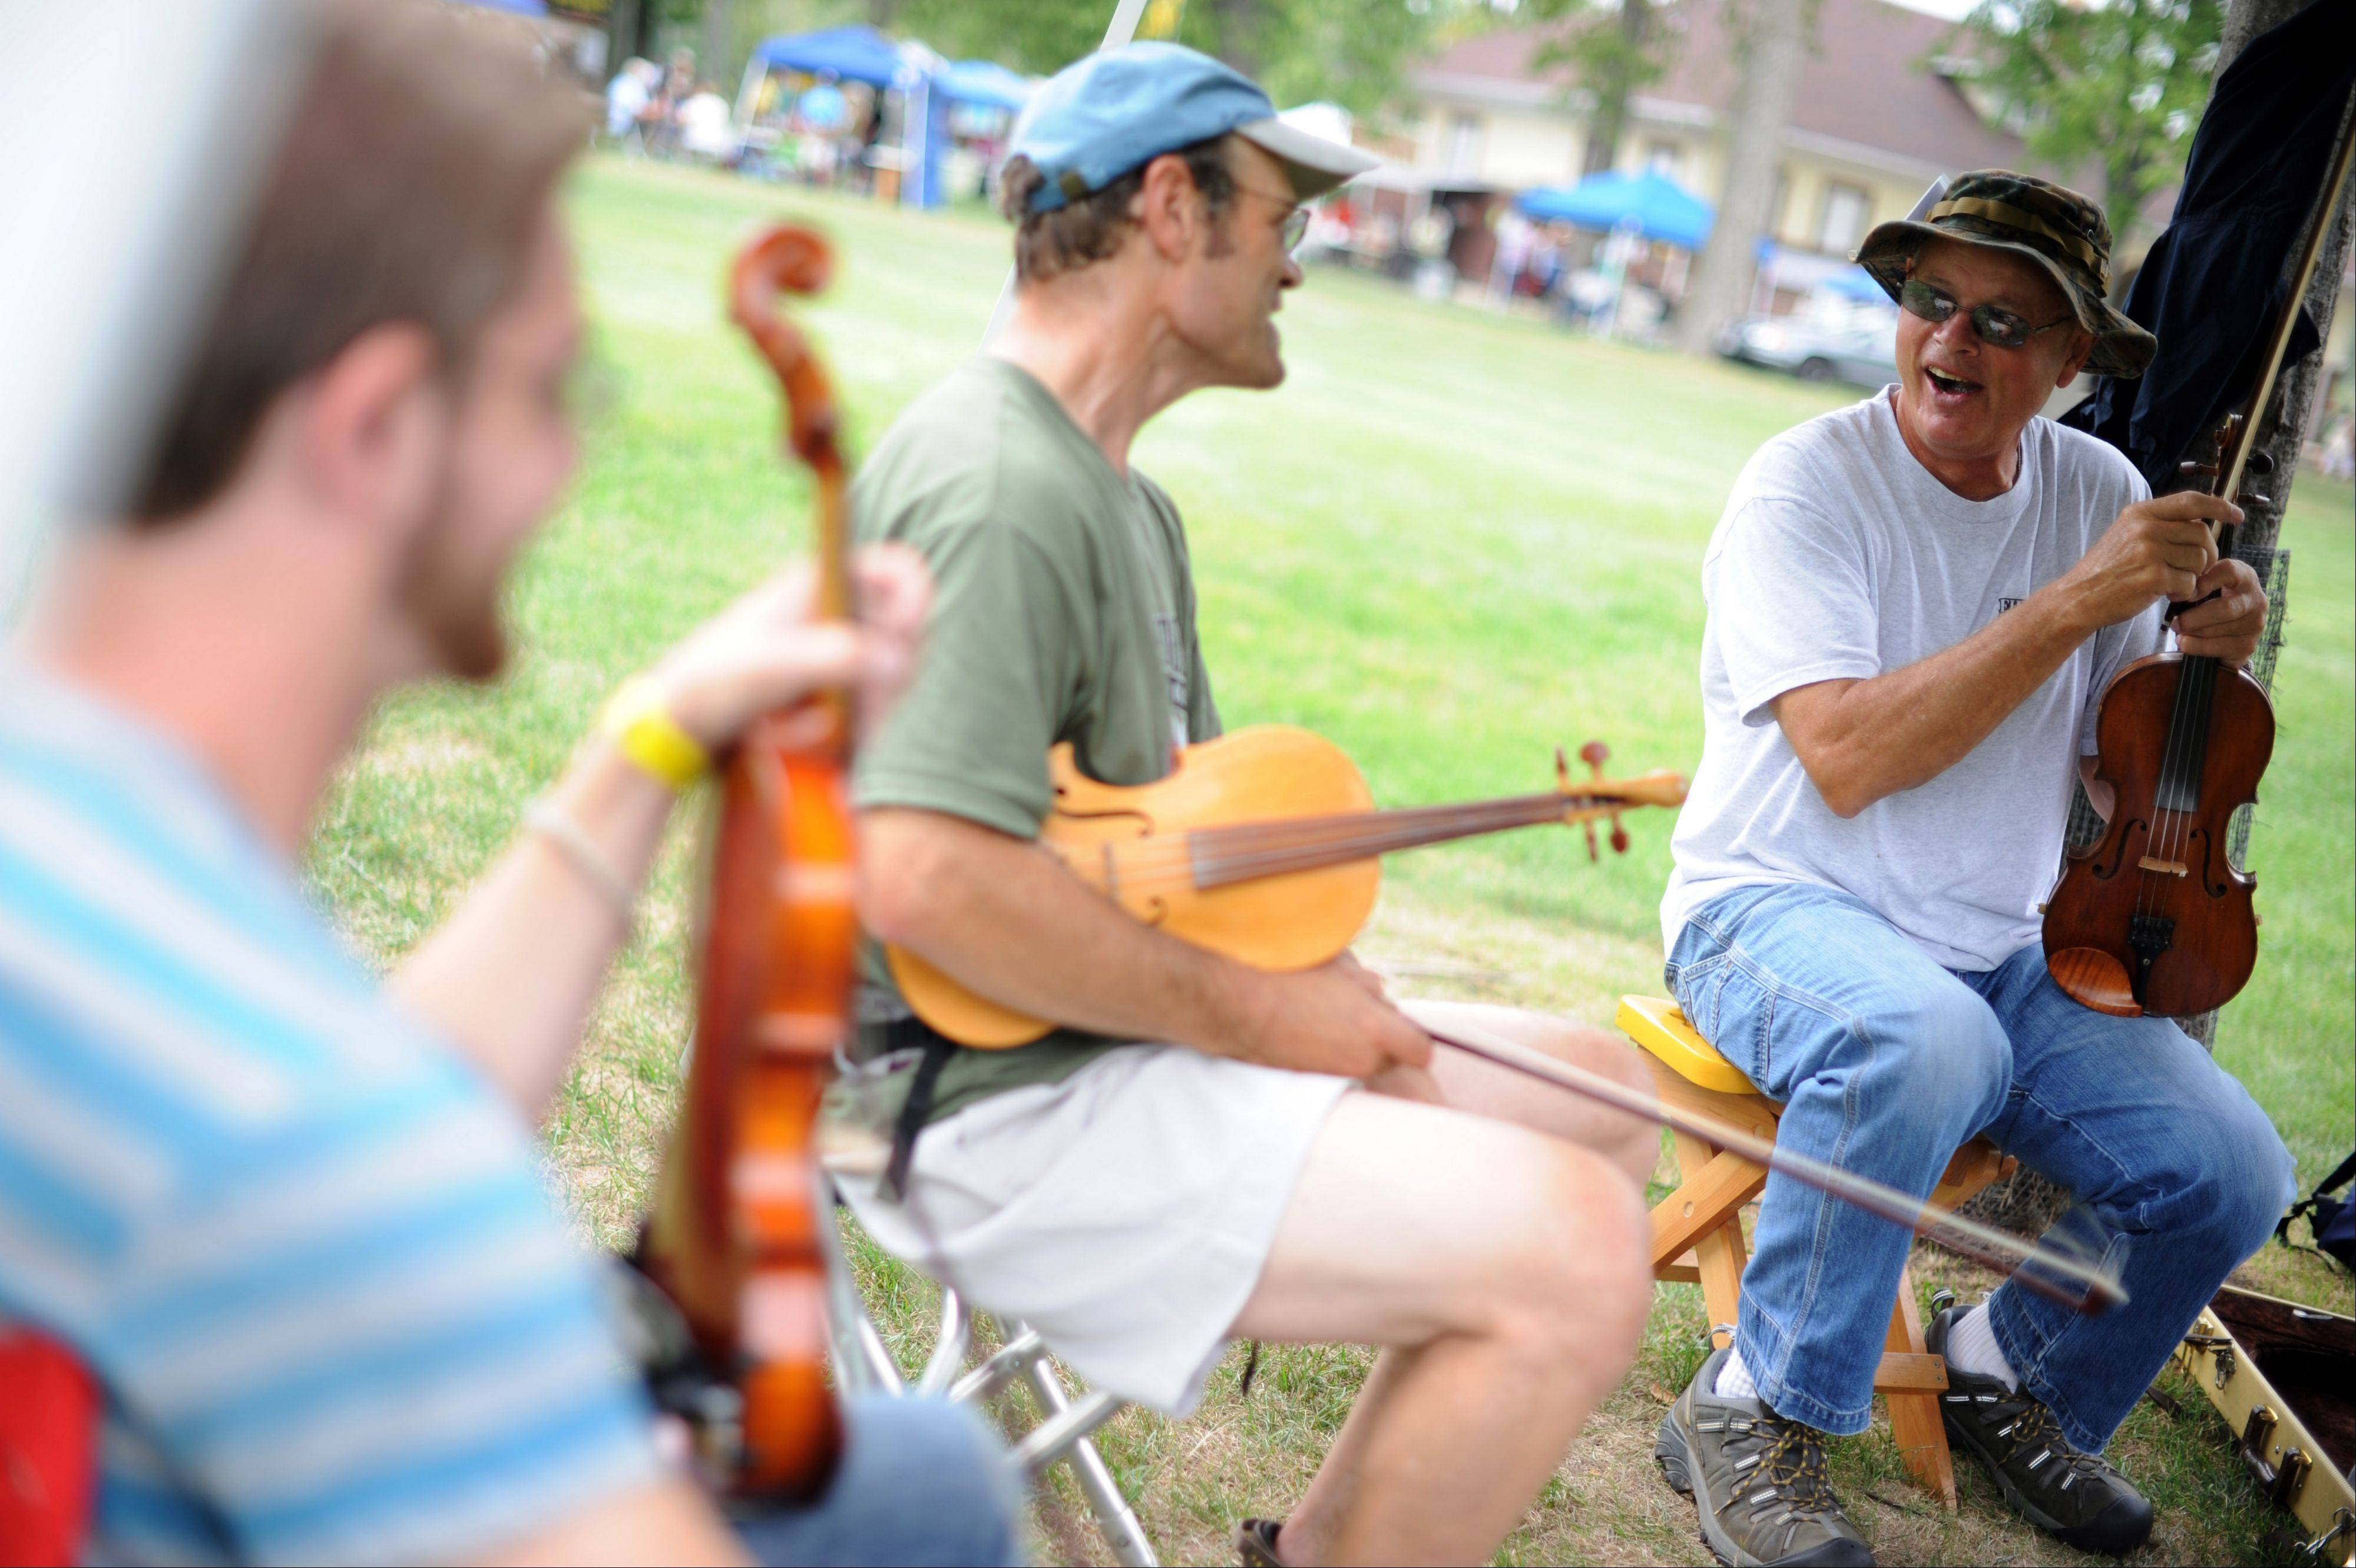 Joe Samojedny, of Palatine, talks with fellow artists between jam sessions at the 36th Annual Fox Valley Folk Music and Storytelling Festival at Island Park in Geneva Sunday.